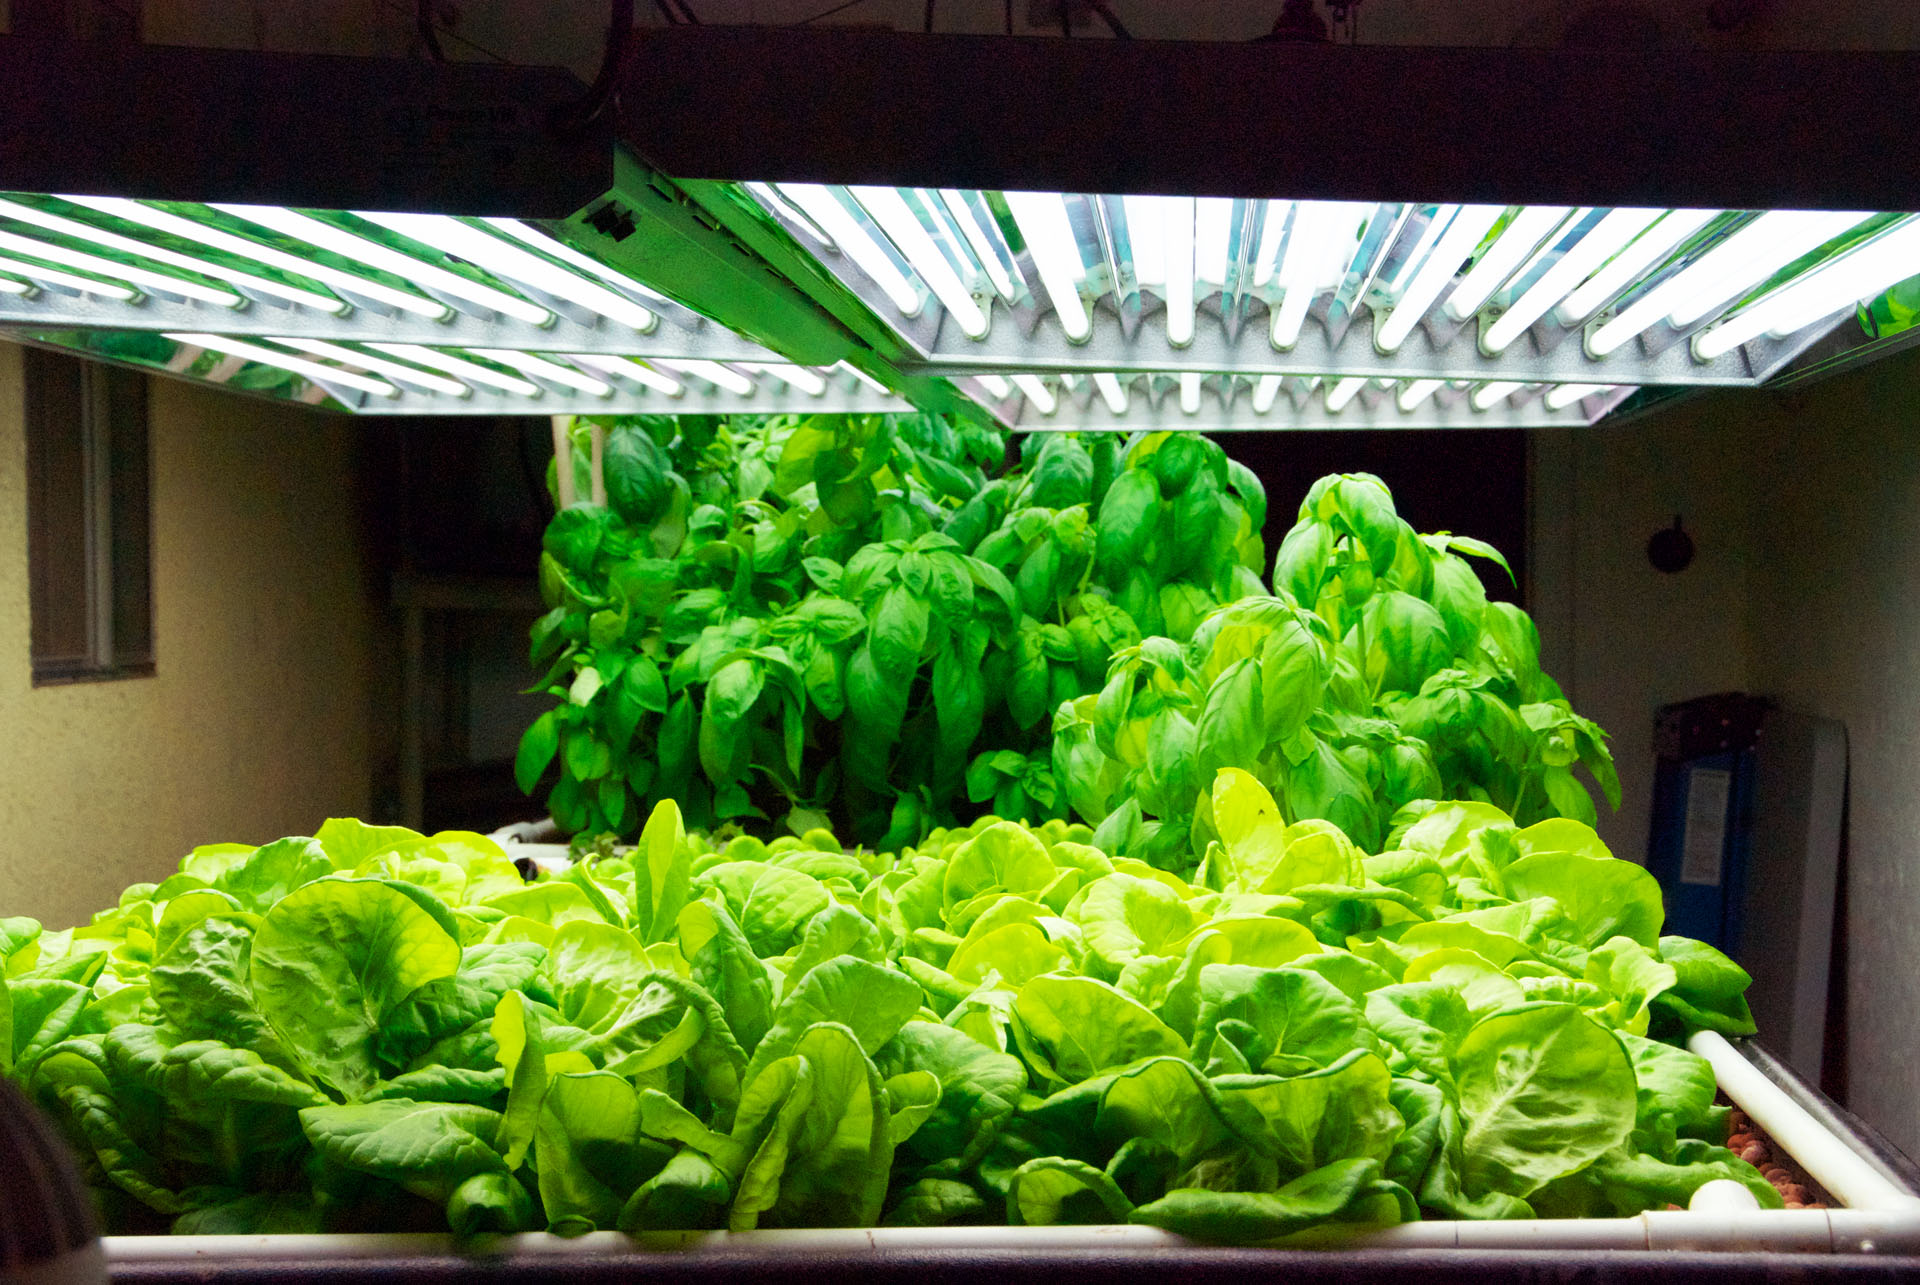 An 11 sq. ft. Grow Bed full of butter lettuce flanked by Basil.